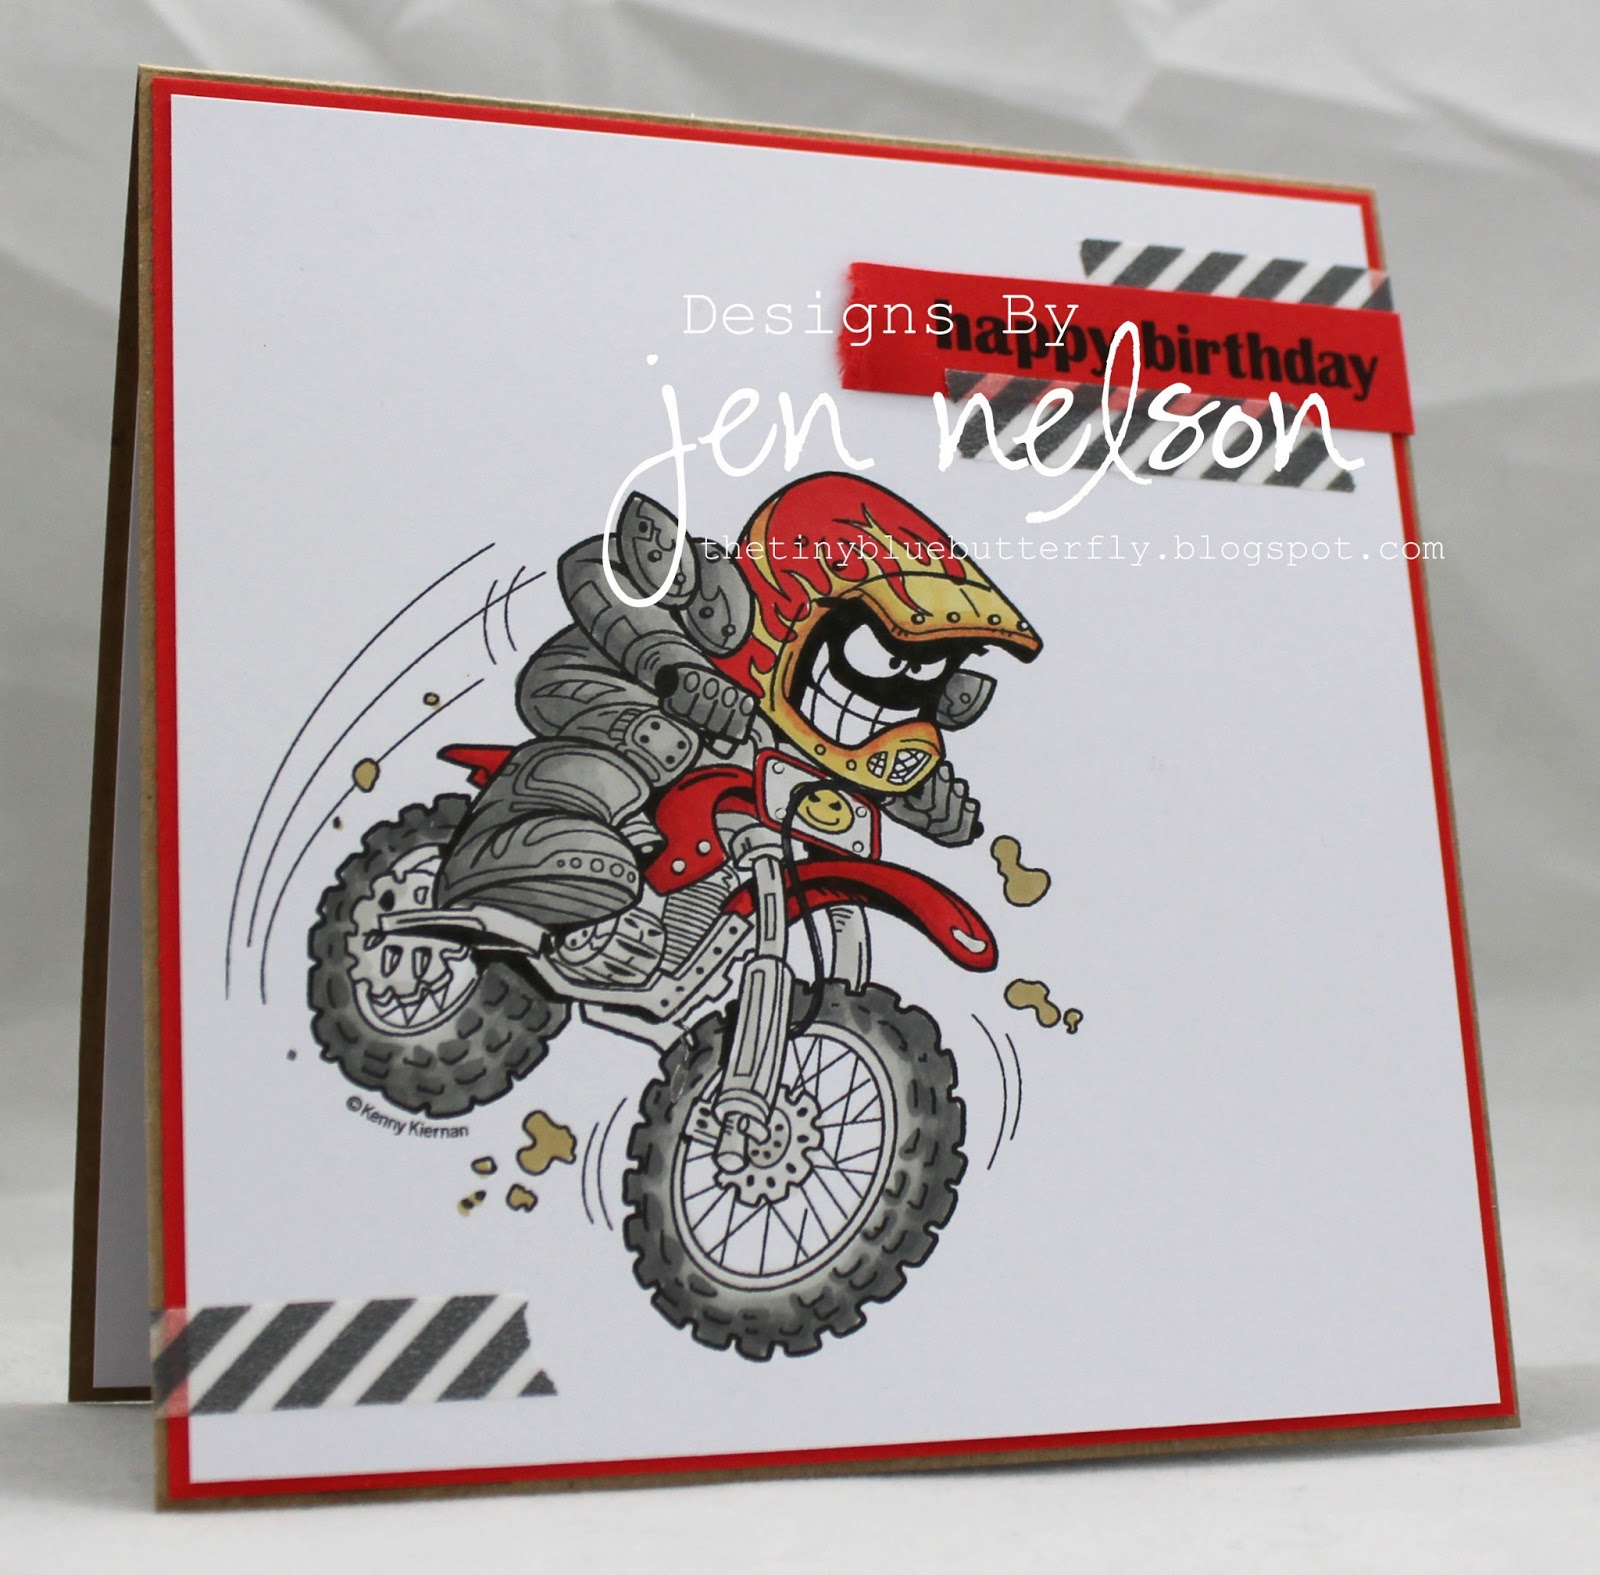 dirt bike birthday card thevillas co